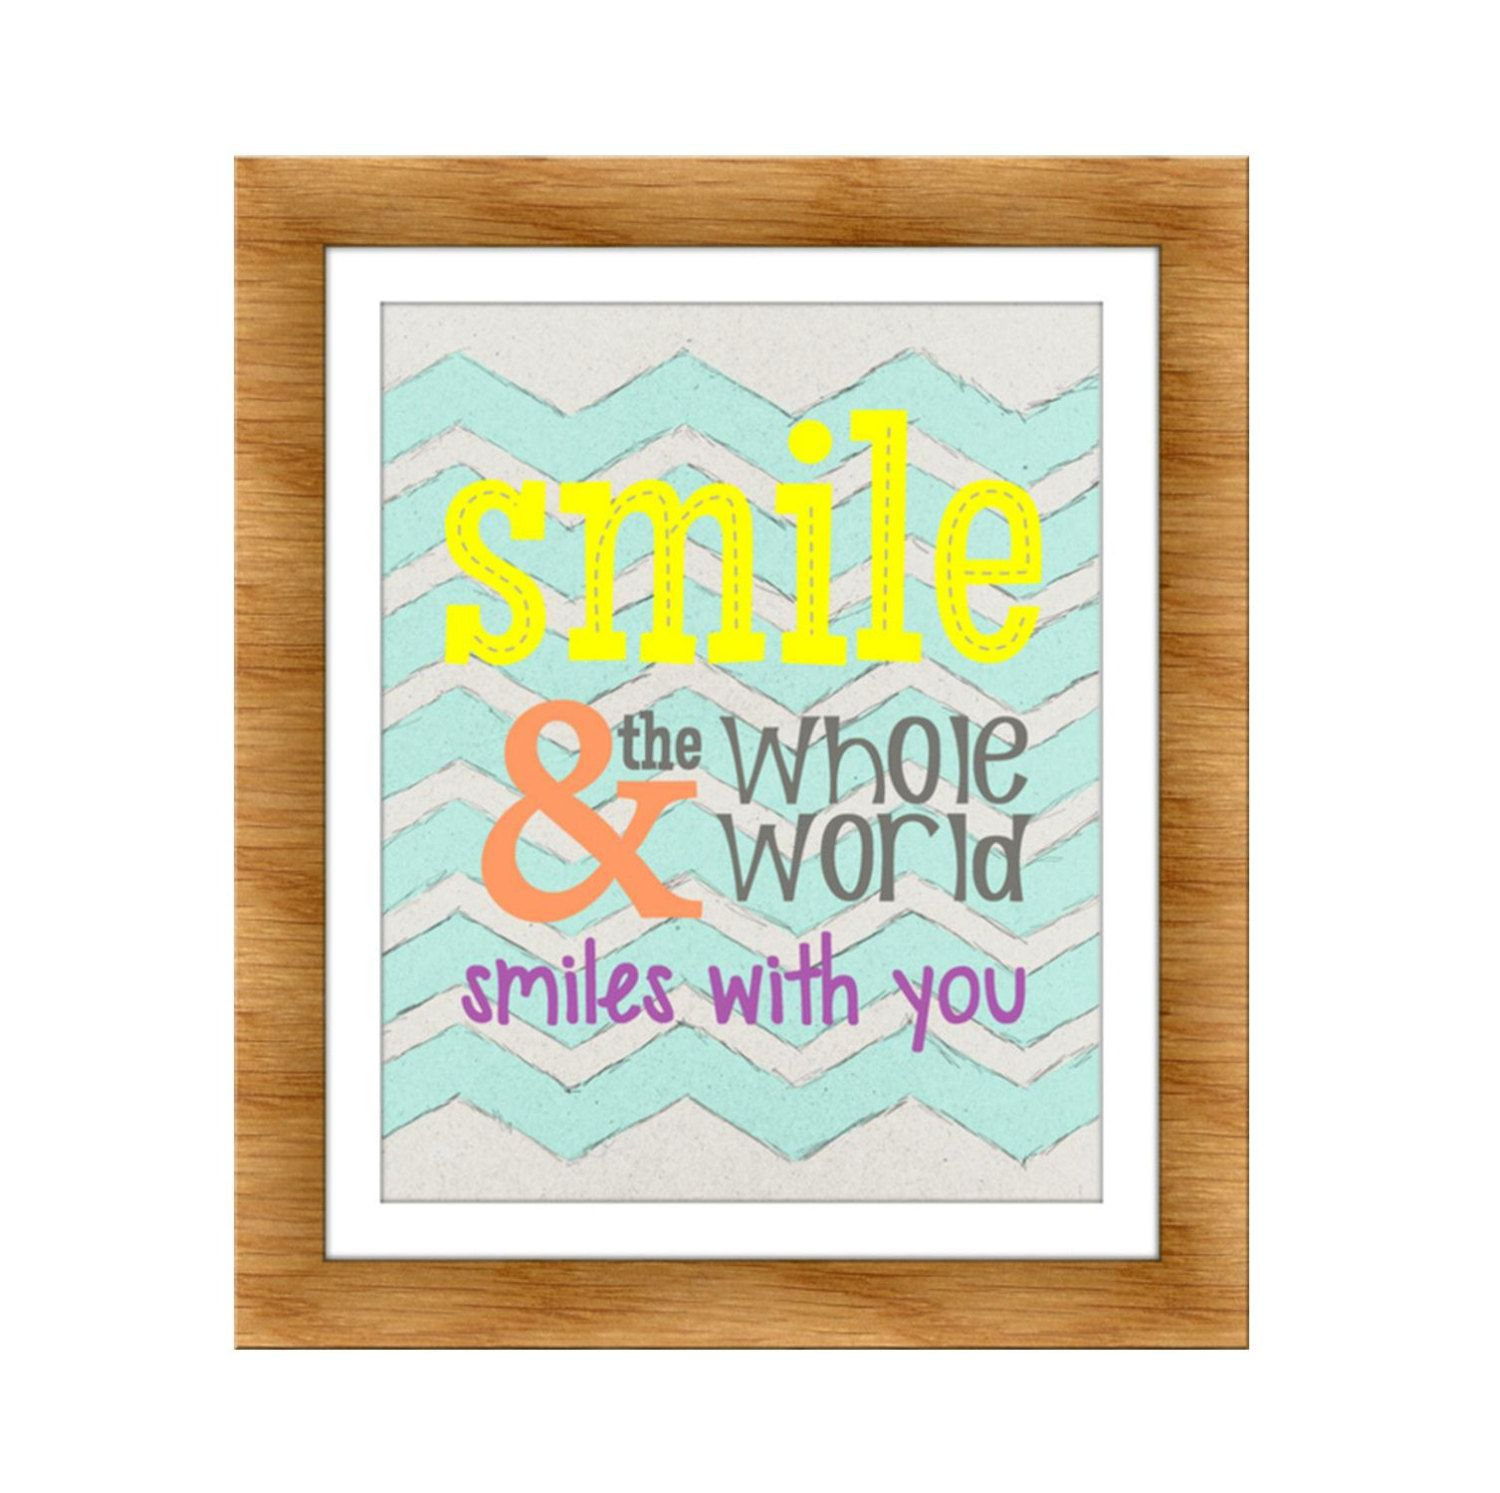 Smile And The Whole World Smiles With You Kids Art Quote Art Playroom Art 12 00 Via Etsy Playroom Art Wall Art Quotes Art Quotes